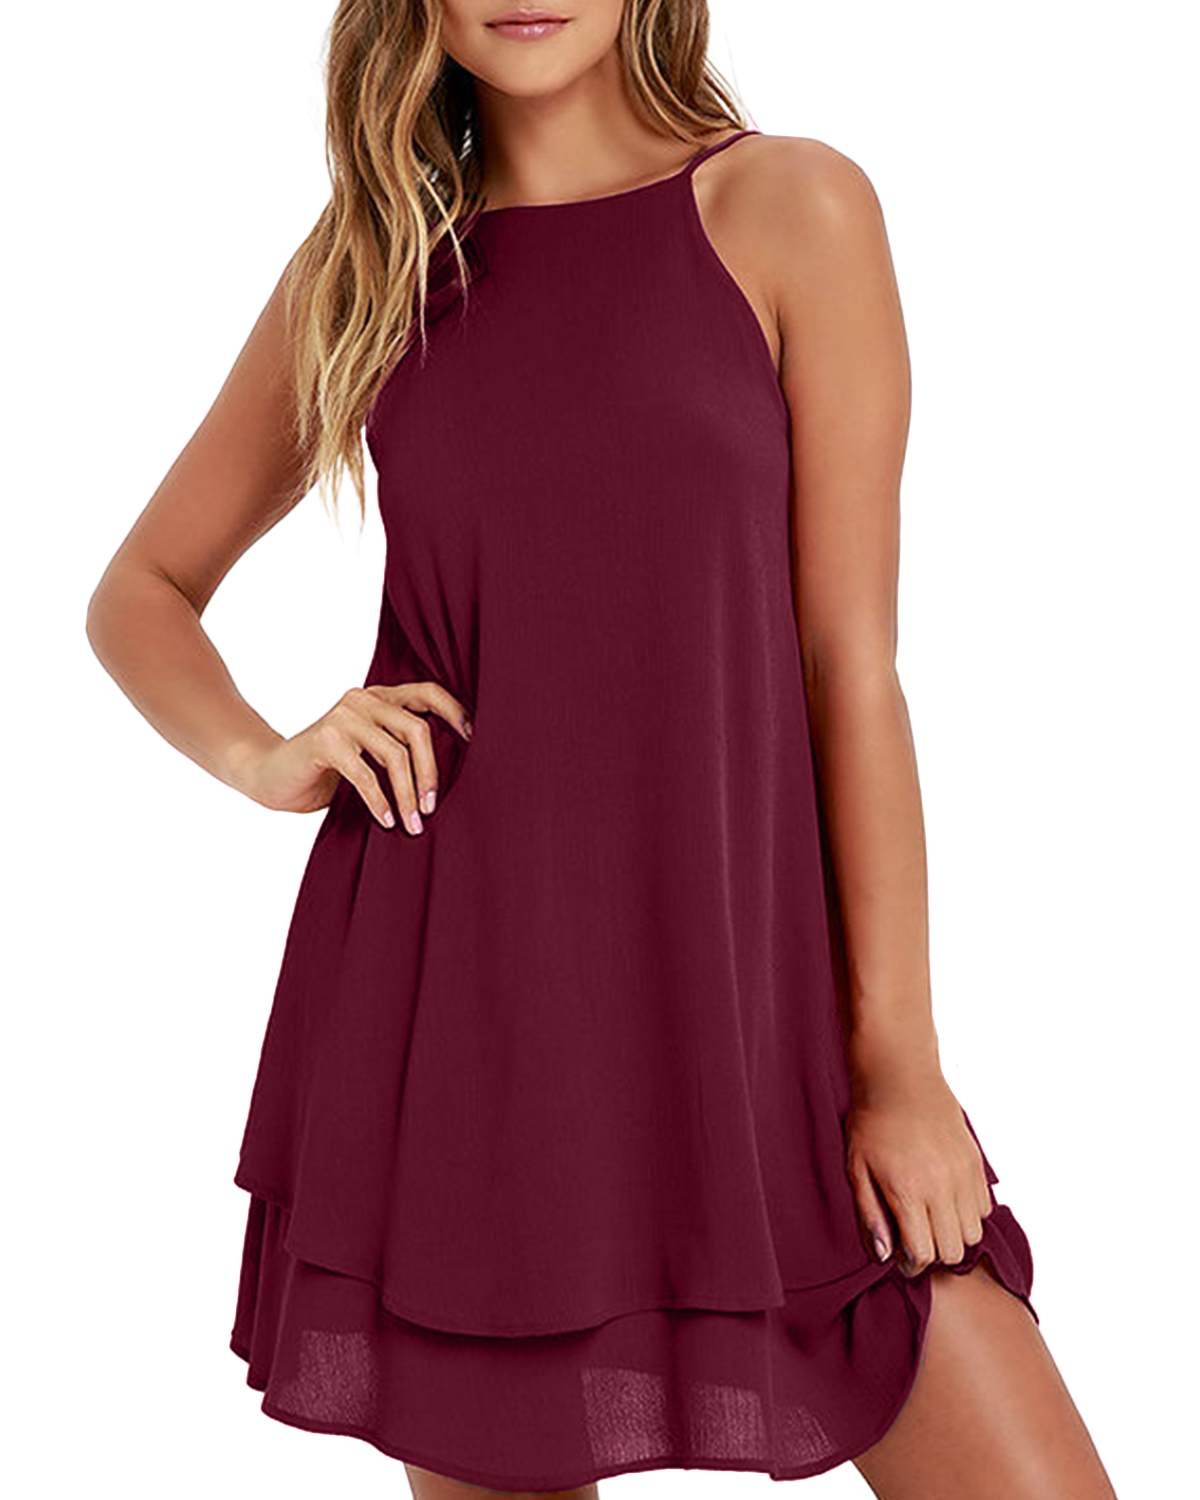 Women <font><b>Chiffon</b></font> Sleeveless Spaghetti Strap <font><b>Mini</b></font> <font><b>Dress</b></font> Ladies ZANZEA 2019 Summer <font><b>Sexy</b></font> <font><b>Backless</b></font> Sundress Solid Beach Party Vestidos image